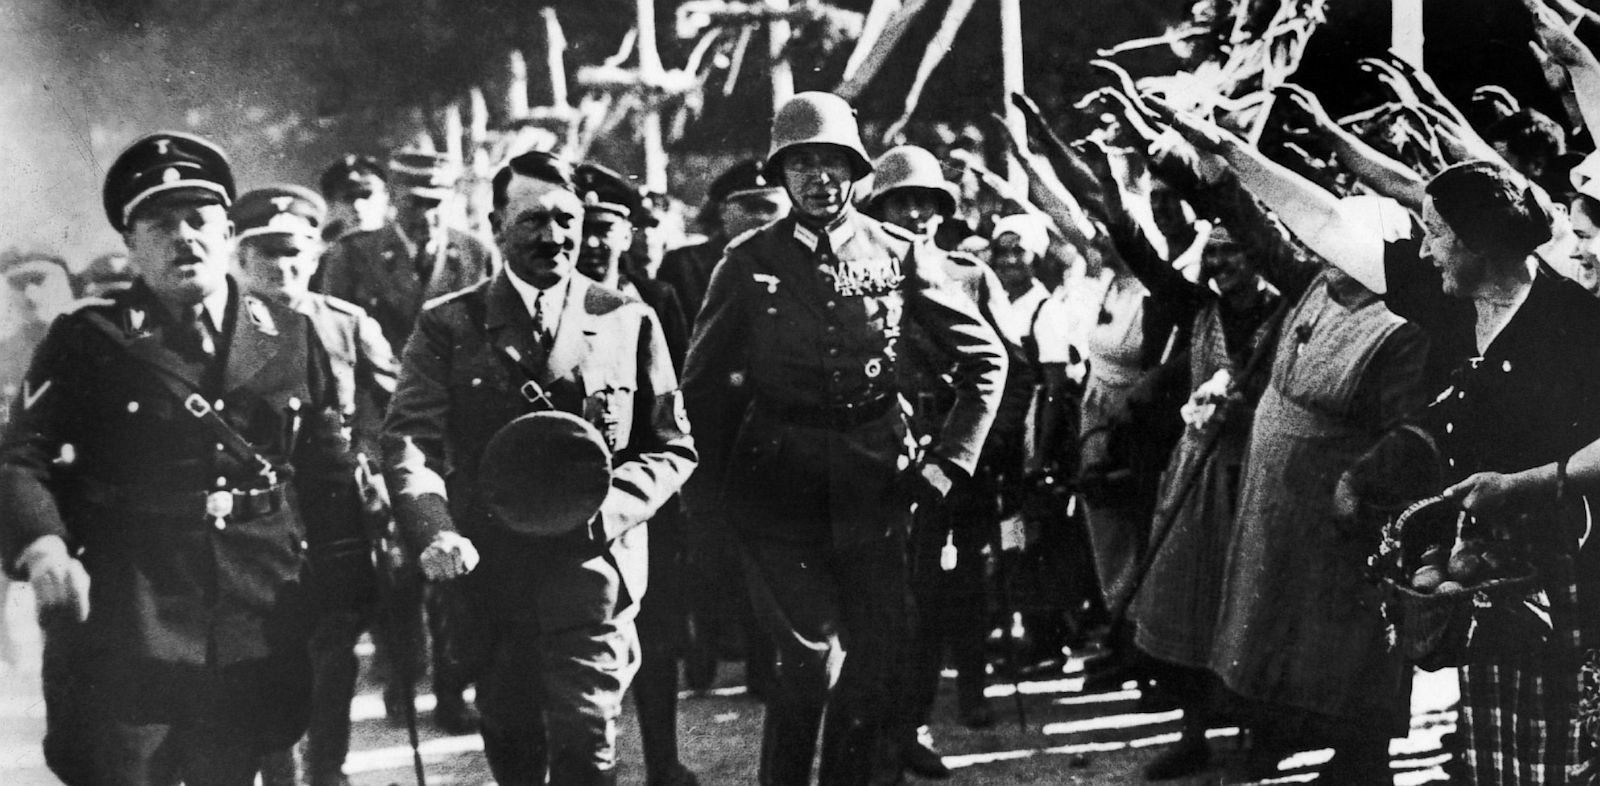 PHOTO: Adolf Hitler in Goslar, Germany in 1934.